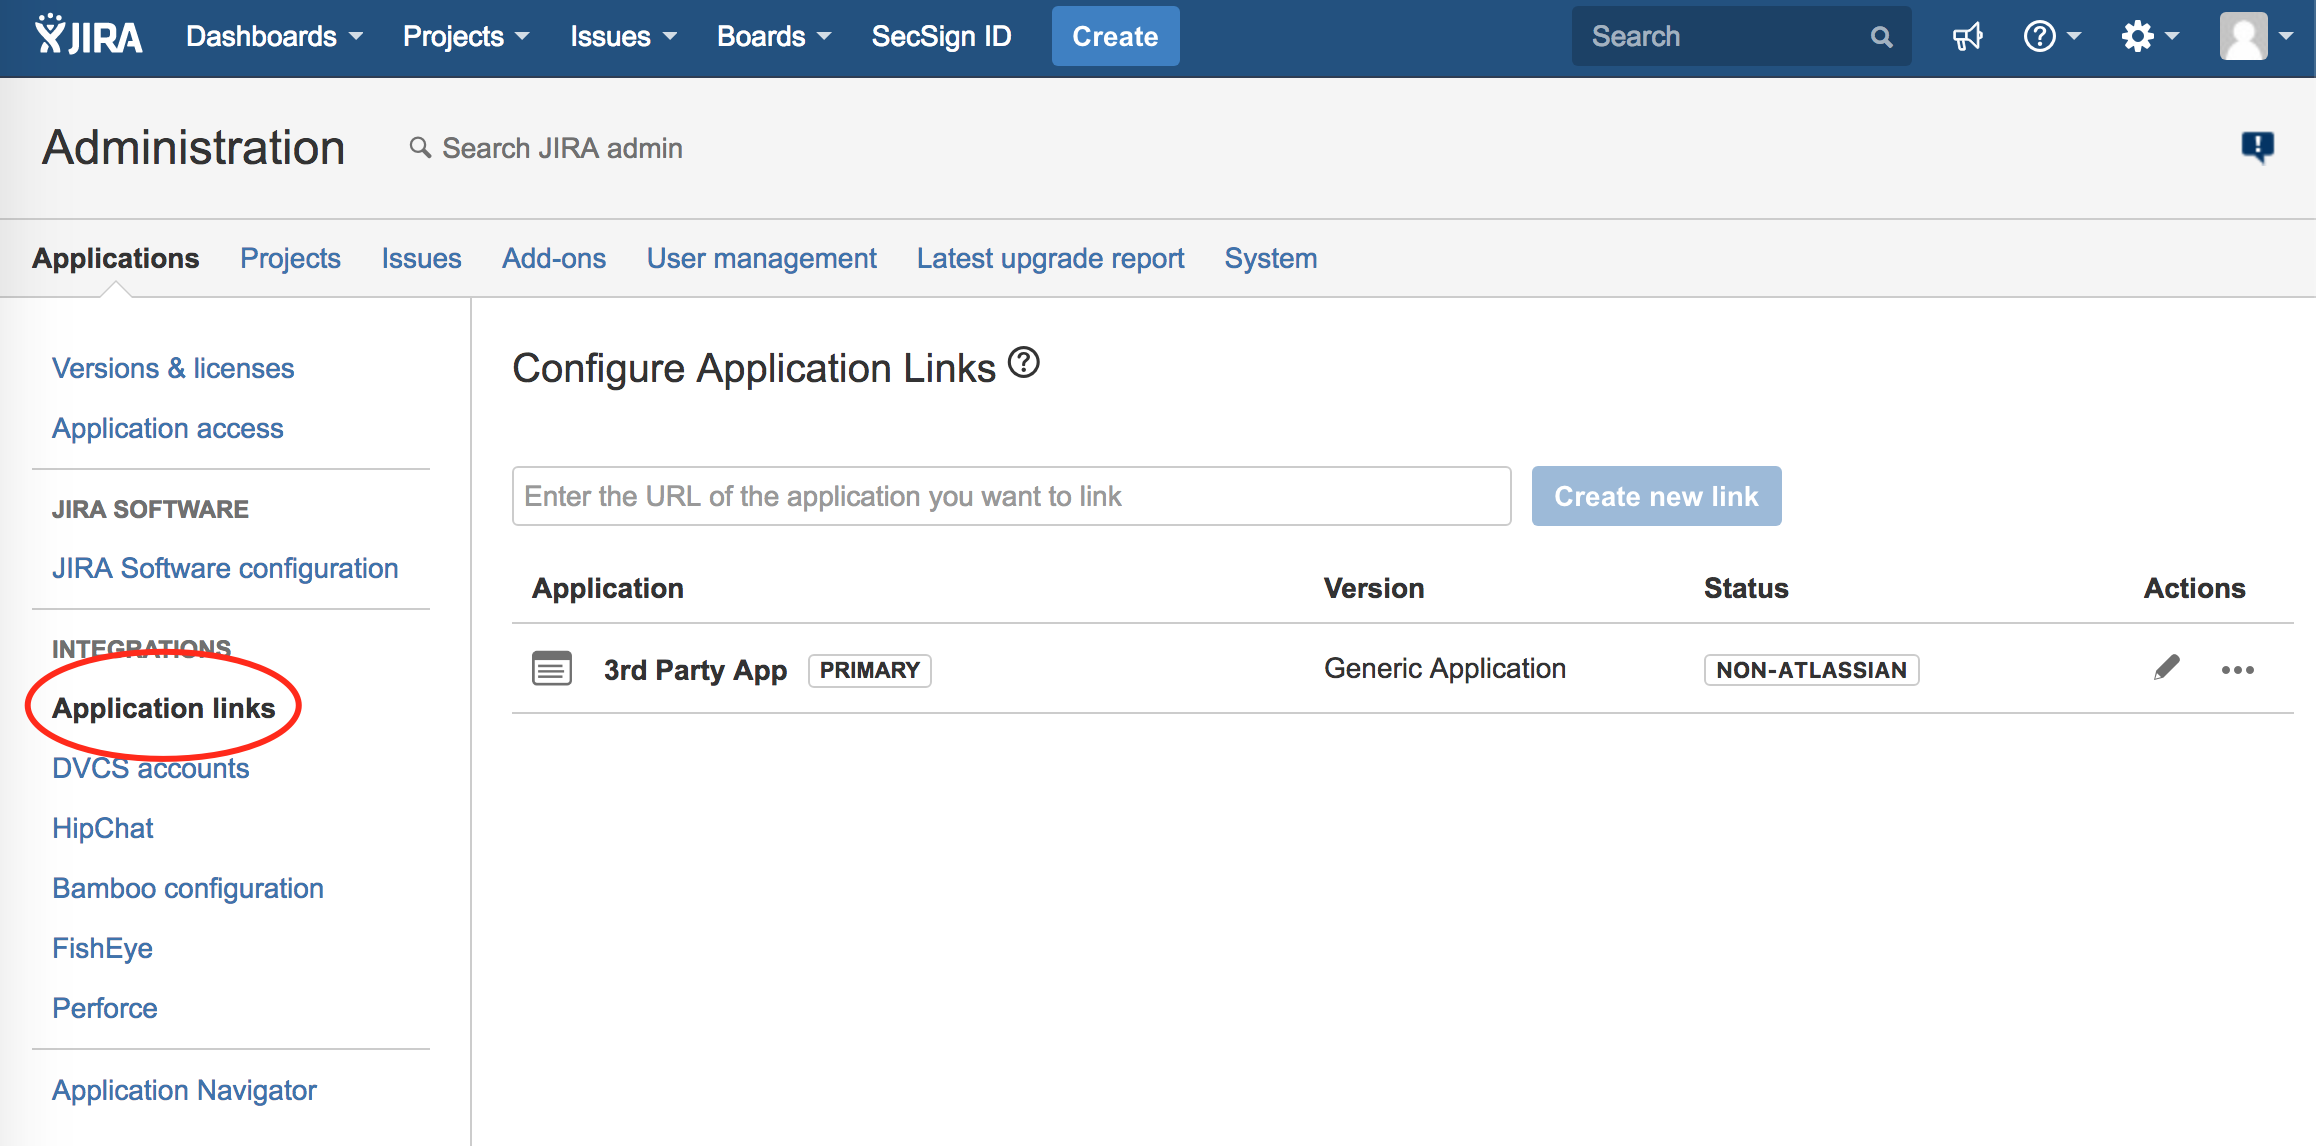 Jira Rest API OAuth Two Factor Authentication | SecSign 2FA